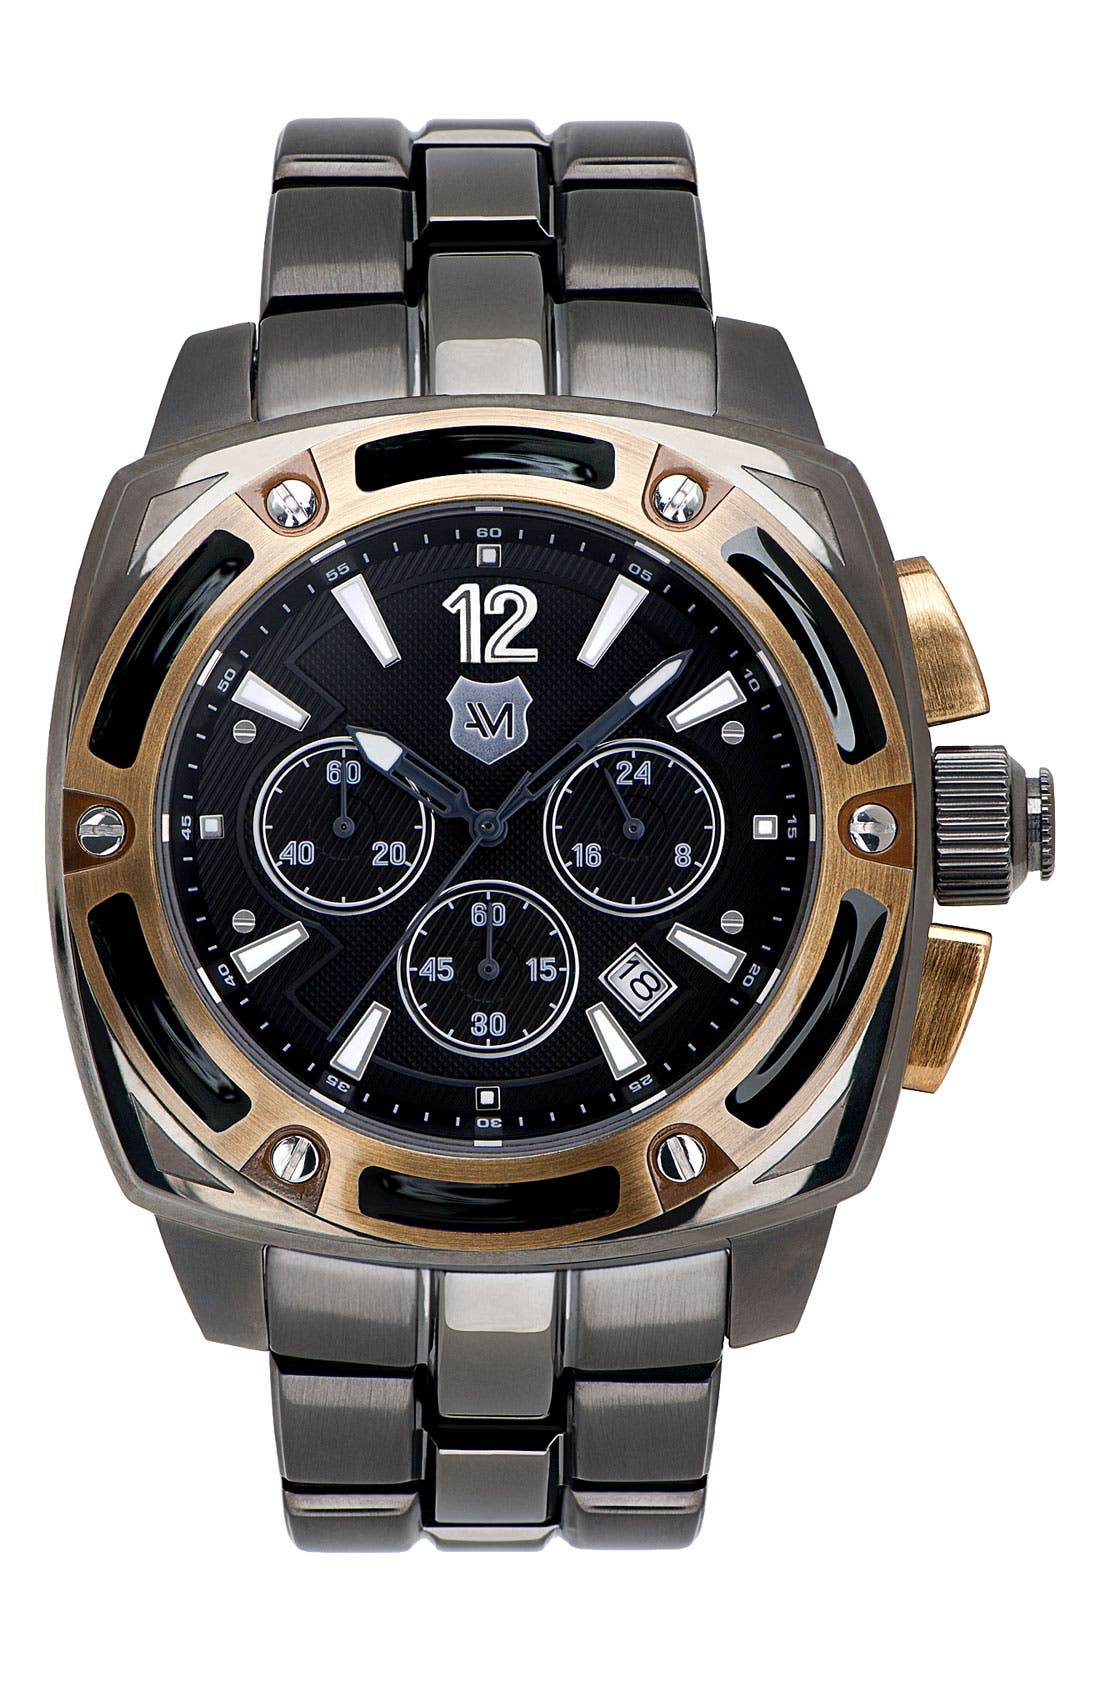 Alternate Image 1 Selected - Andrew Marc Watches 'G-III Bomber' Chronograph Bracelet Watch, 46mm